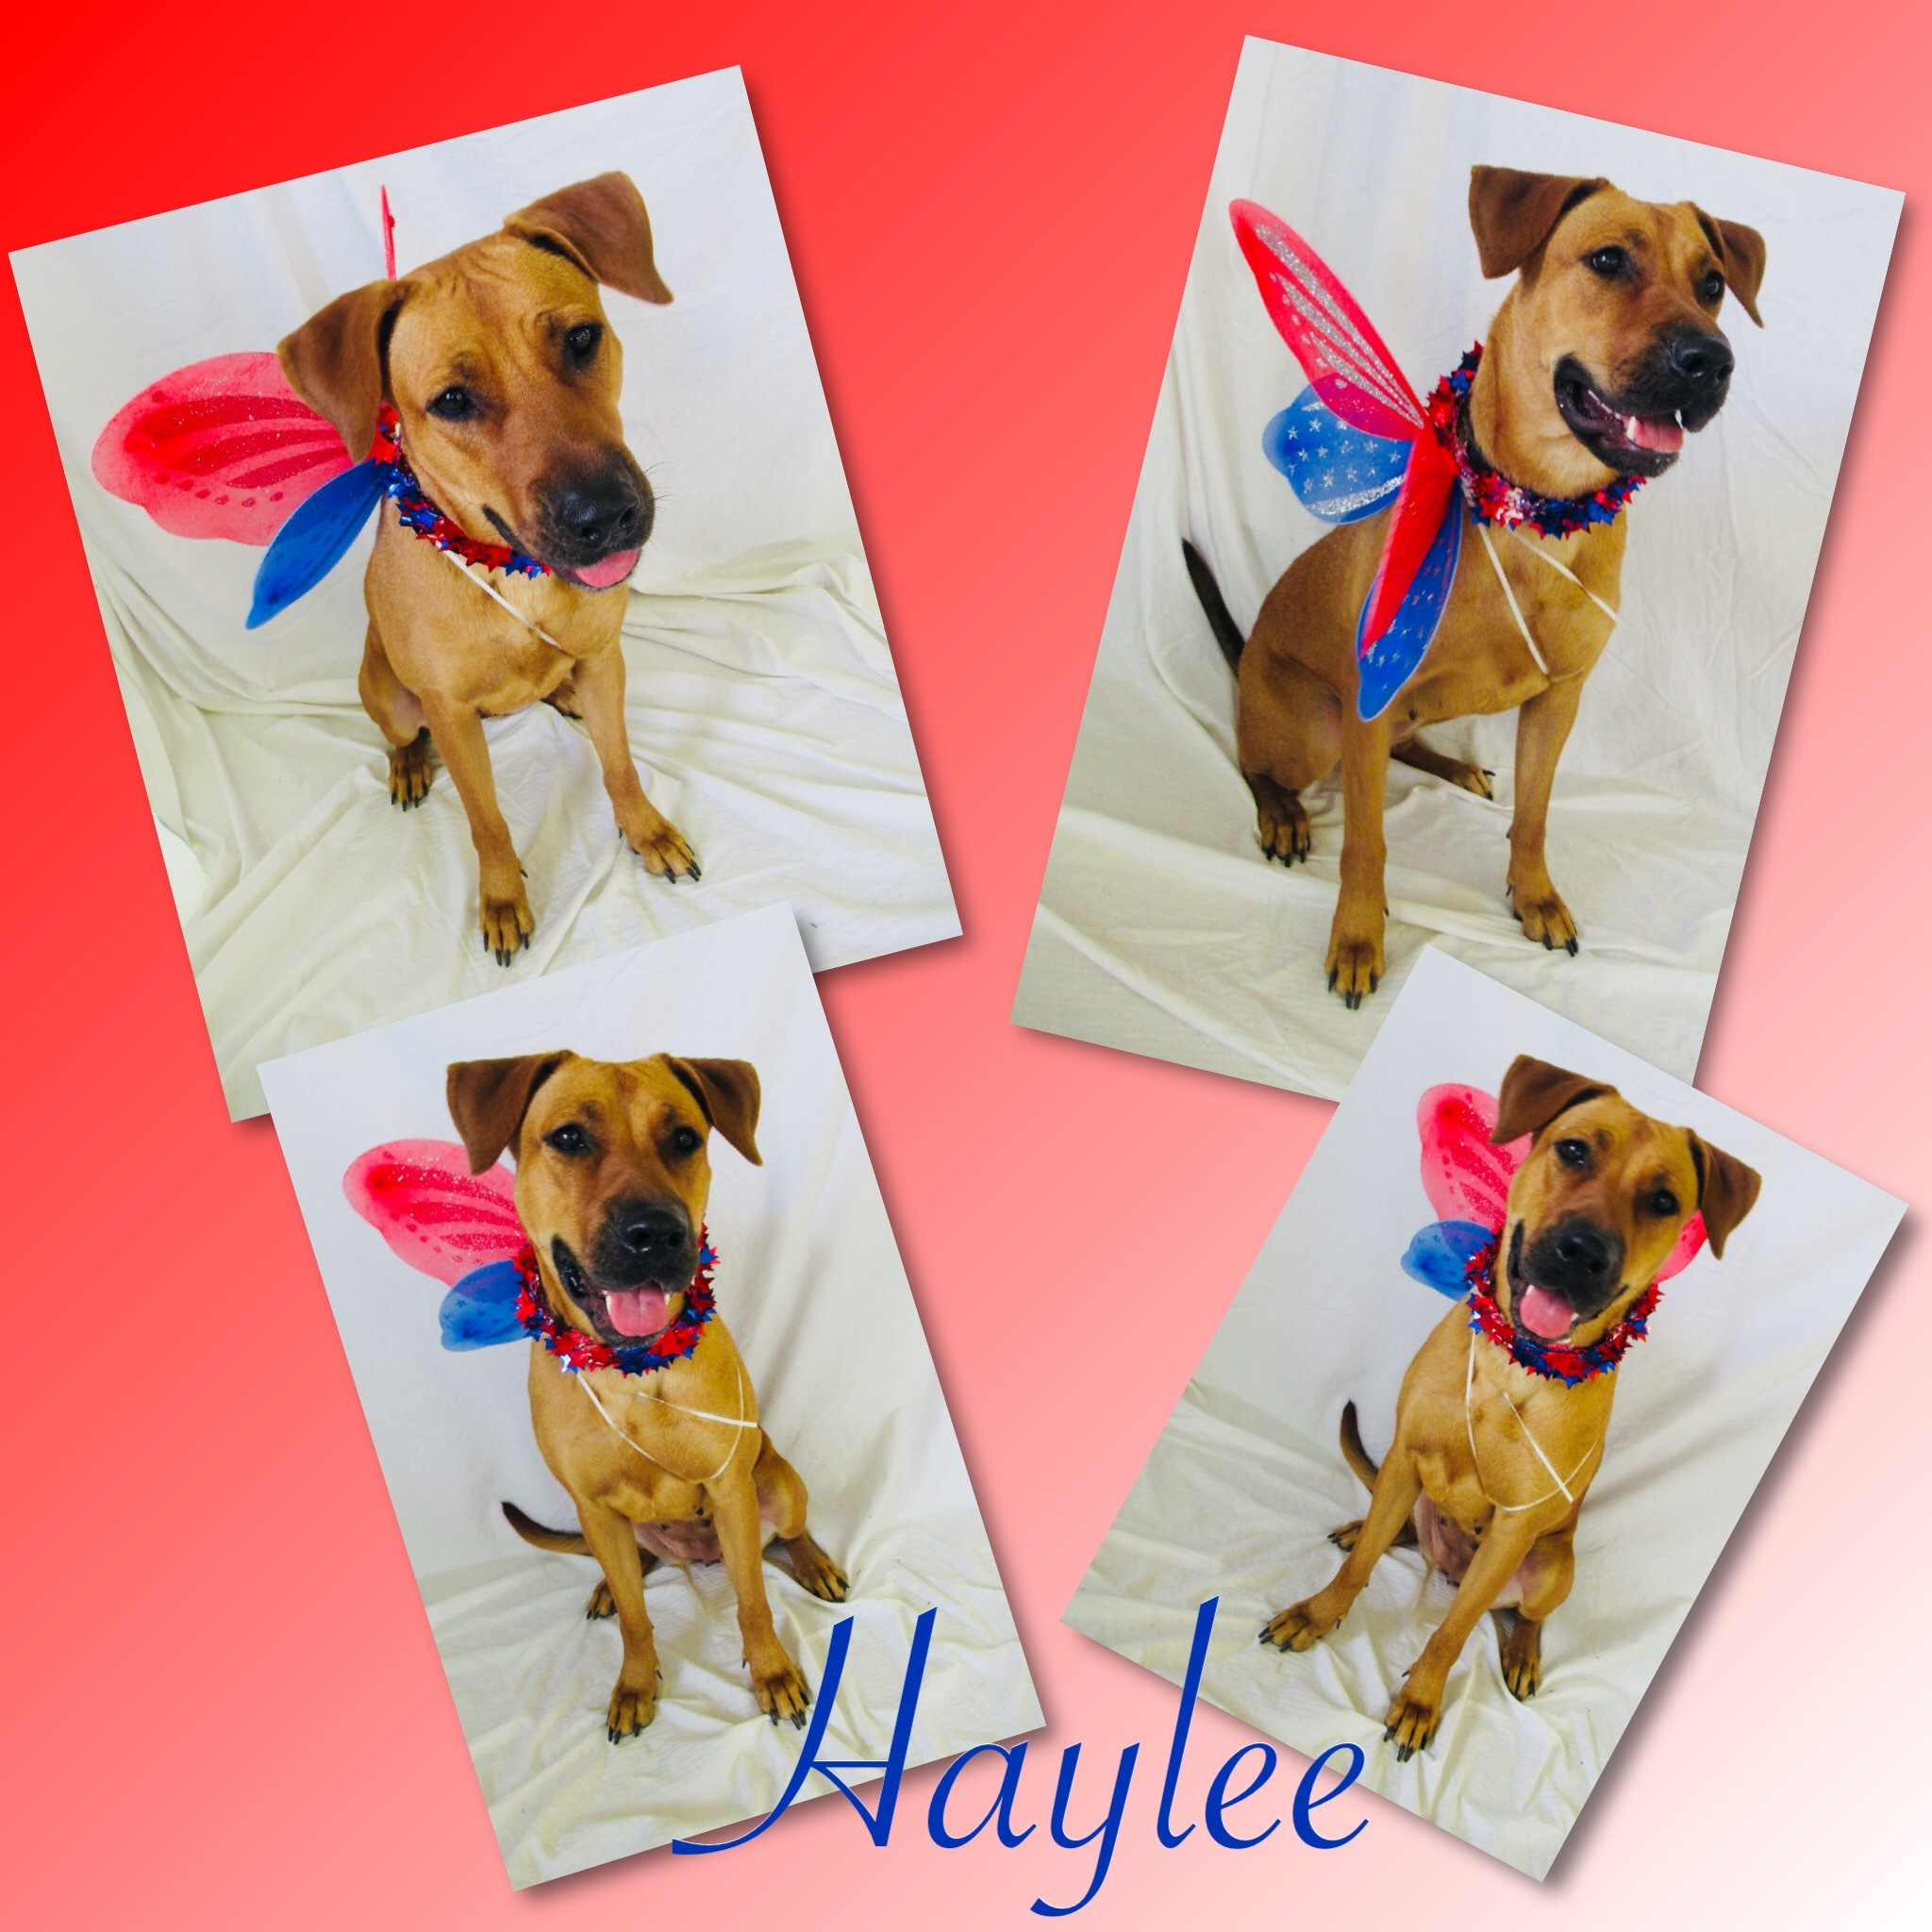 Haylee Pawsitive Direction Program detail page